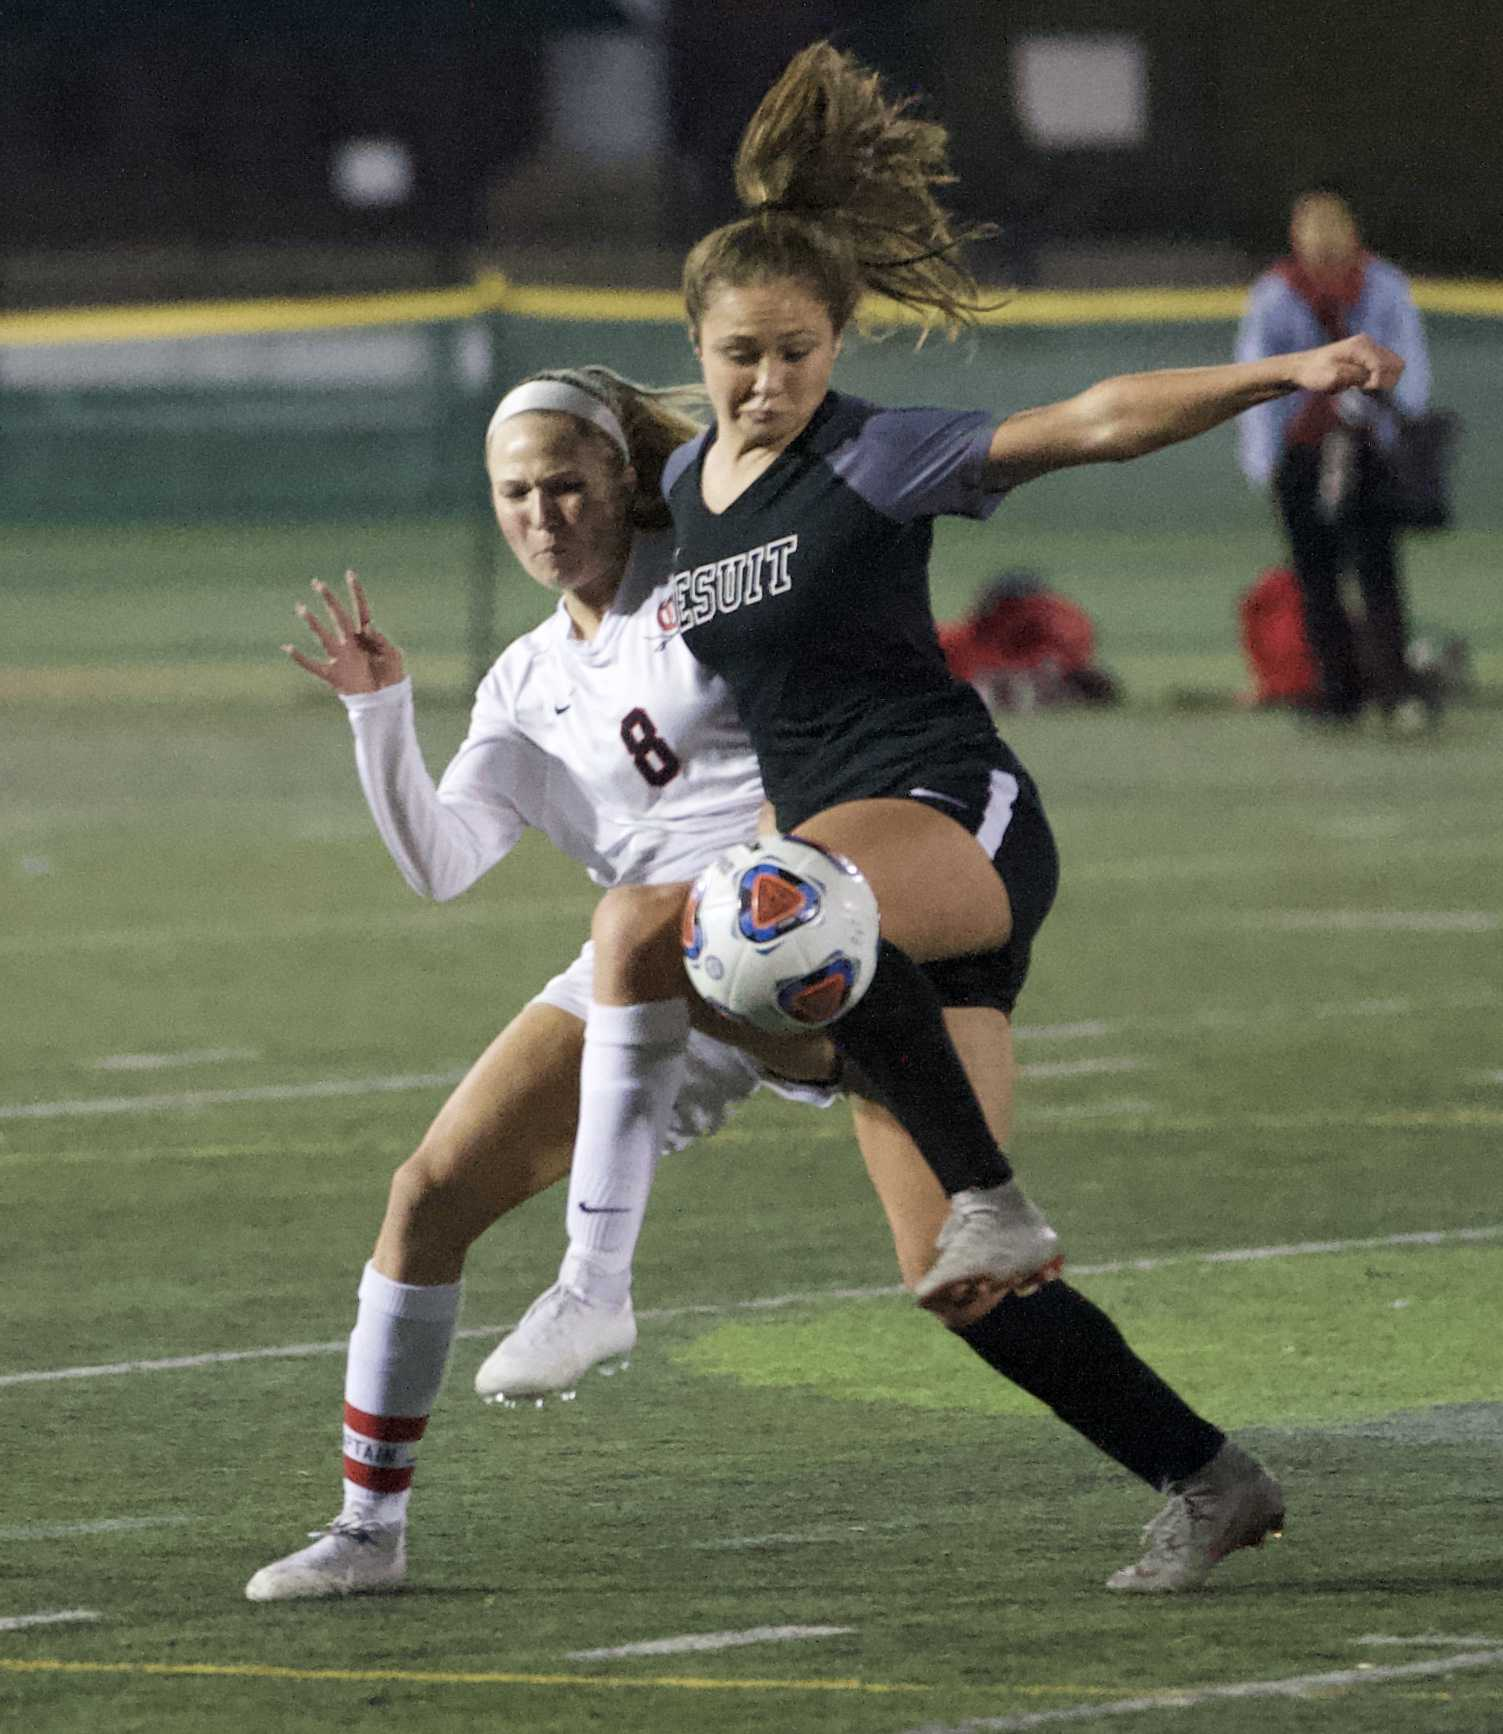 Jesuit's Callan Harrington battles with Clackamas forward Madeline Tetz for a ball at midfield. (Photo by Norm Maves Jr.)